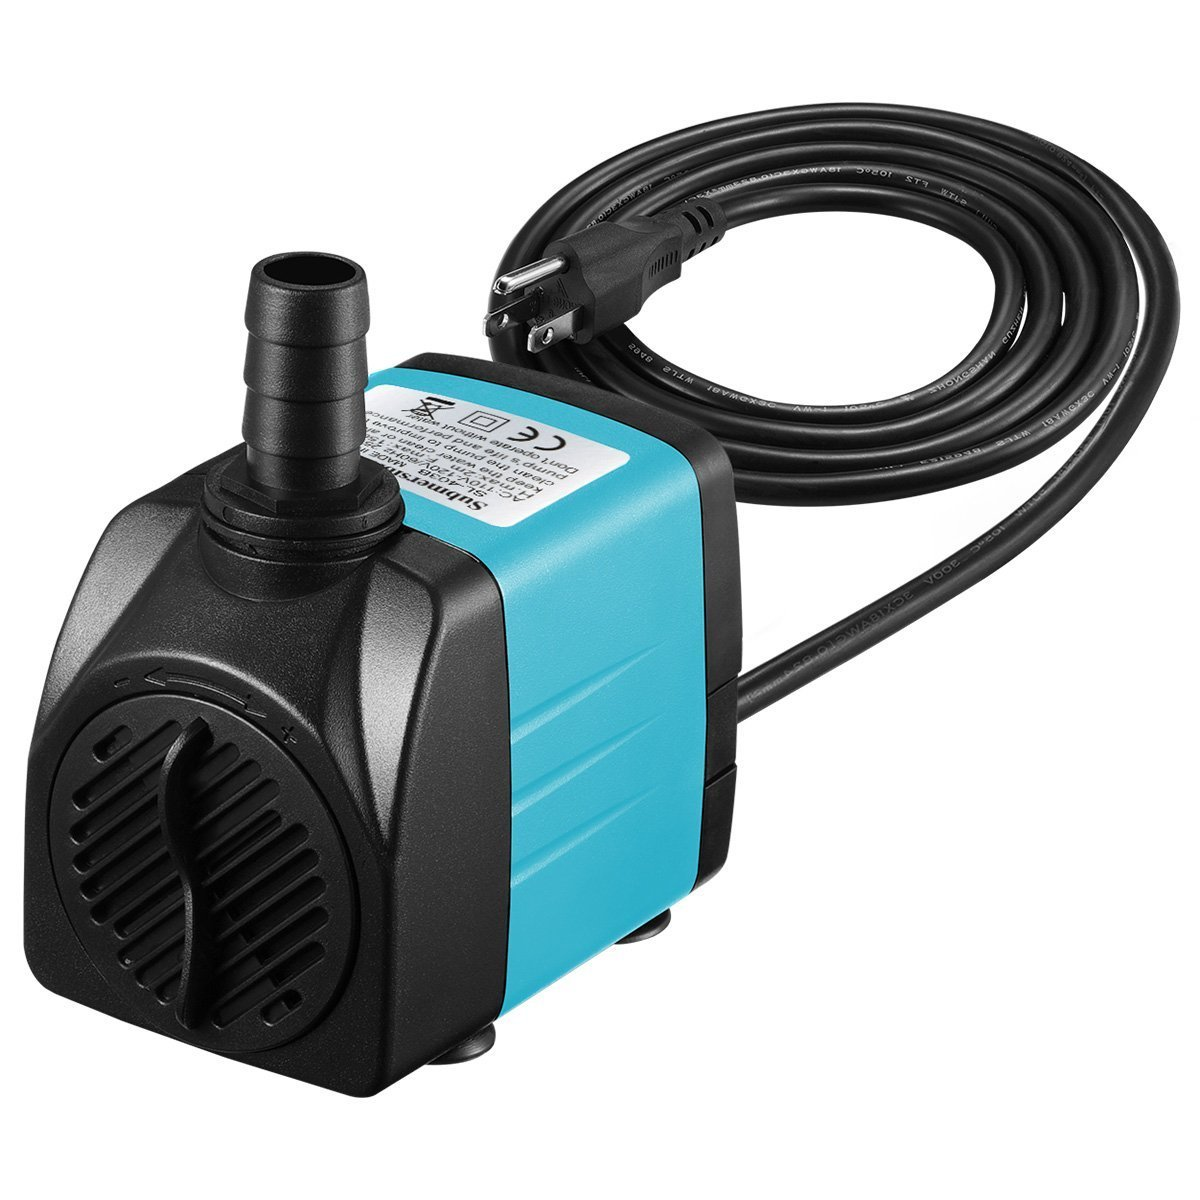 Homasy Upgraded 400GPH Submersible Pump 25W Ultra Quiet Fountain Water Pump with 5.9ft Power Cord, 2 Nozzles for Aquarium, Fish Tank, Pond, Hydroponics, Statuary, Blue